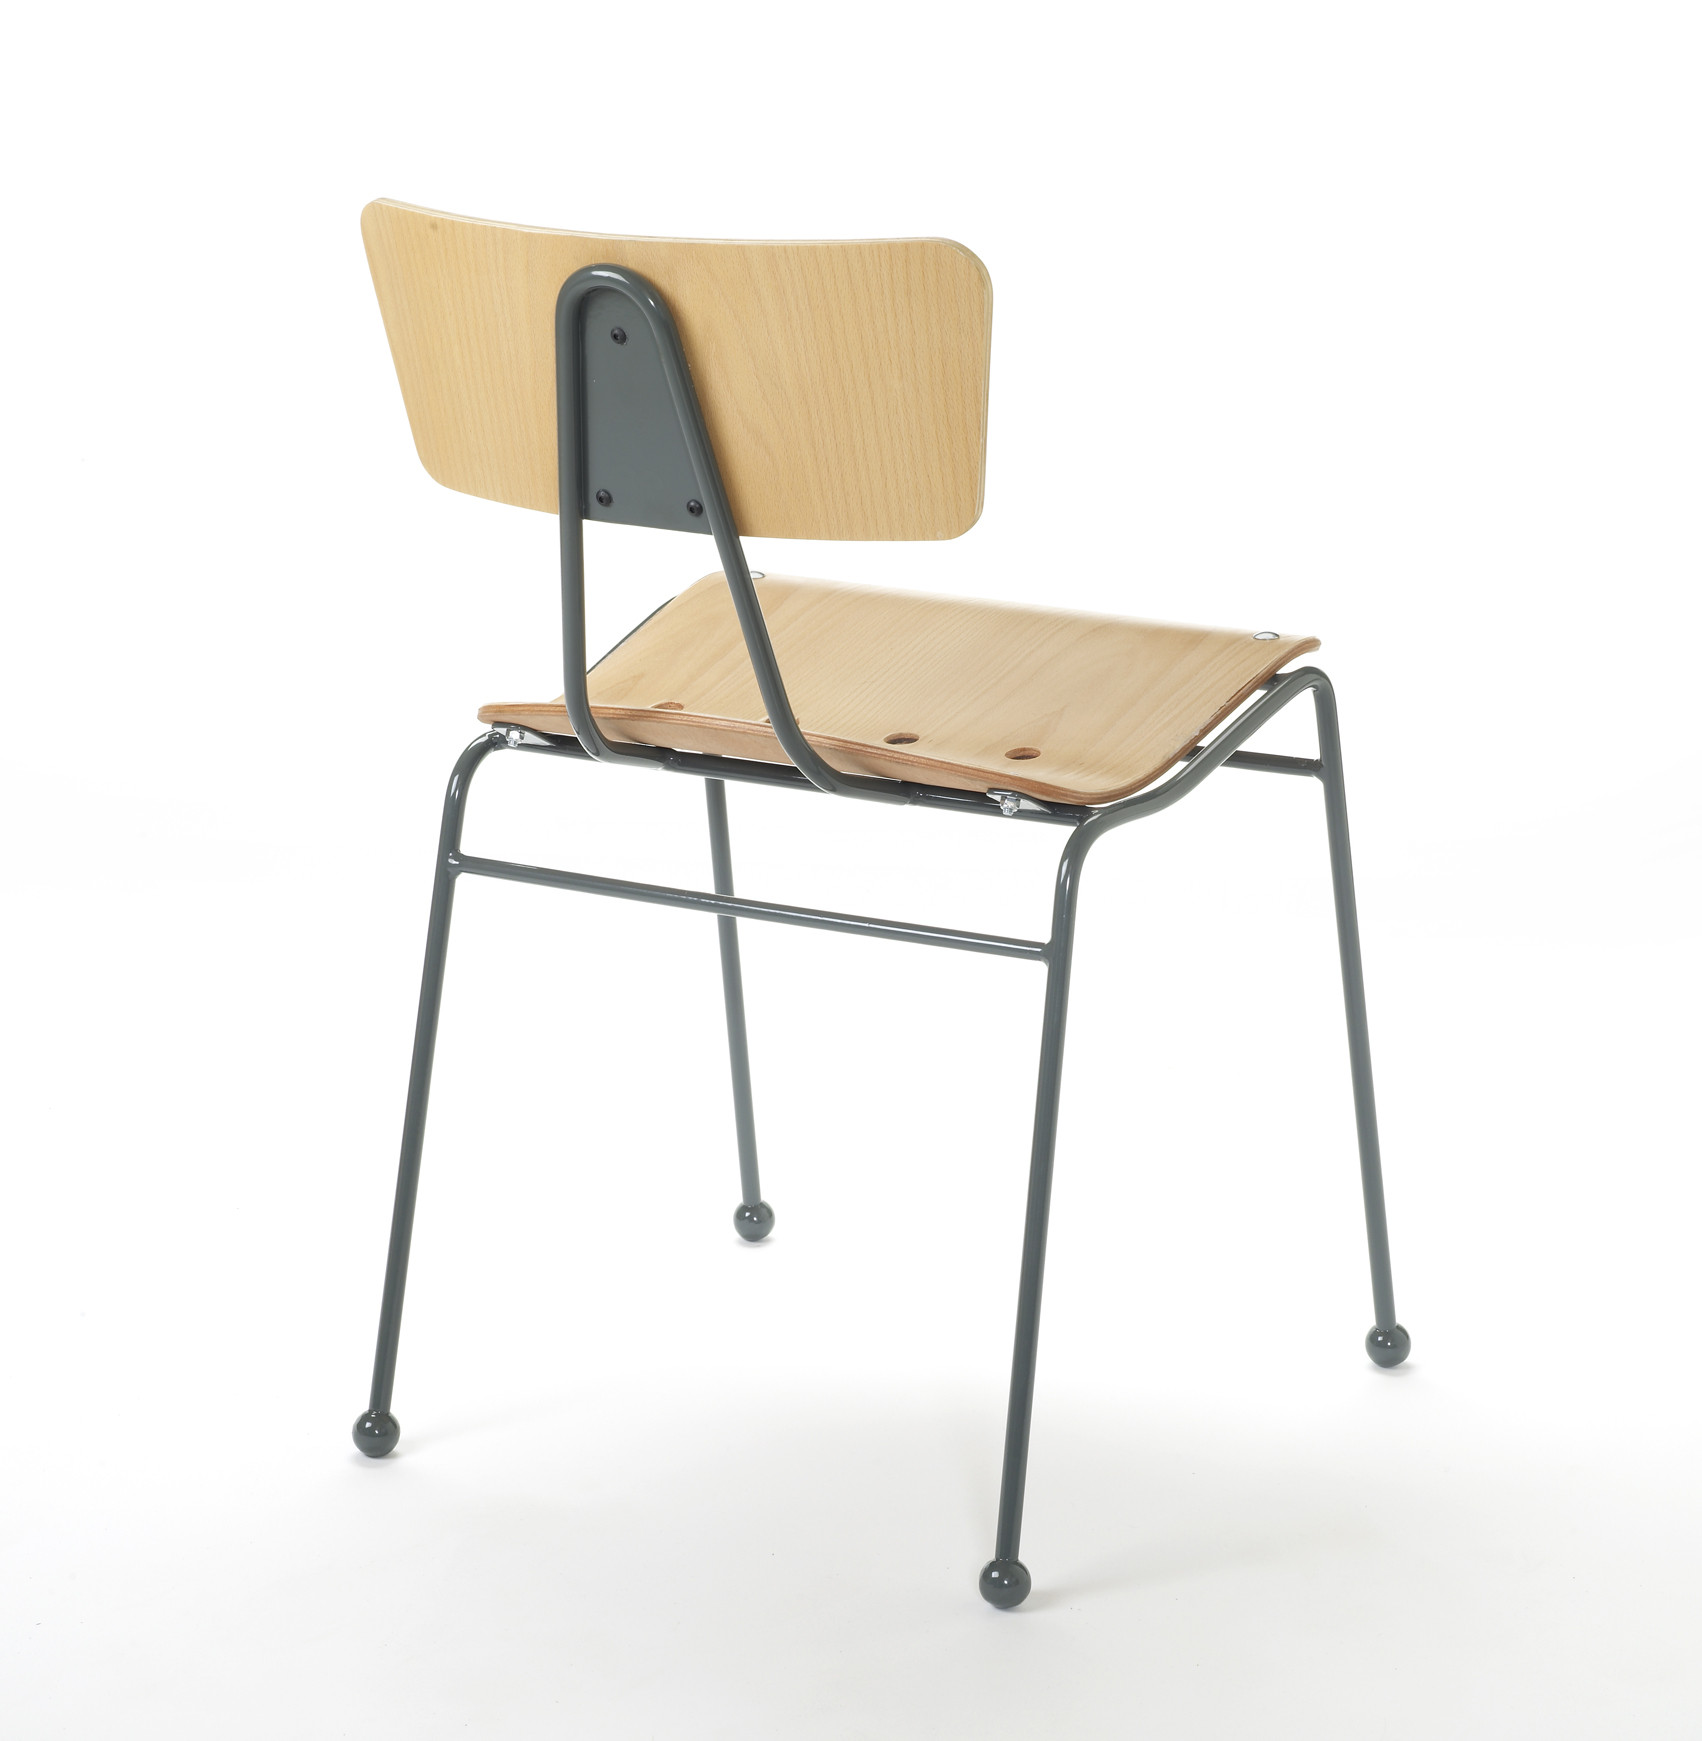 The Roebuck Stacking Chair